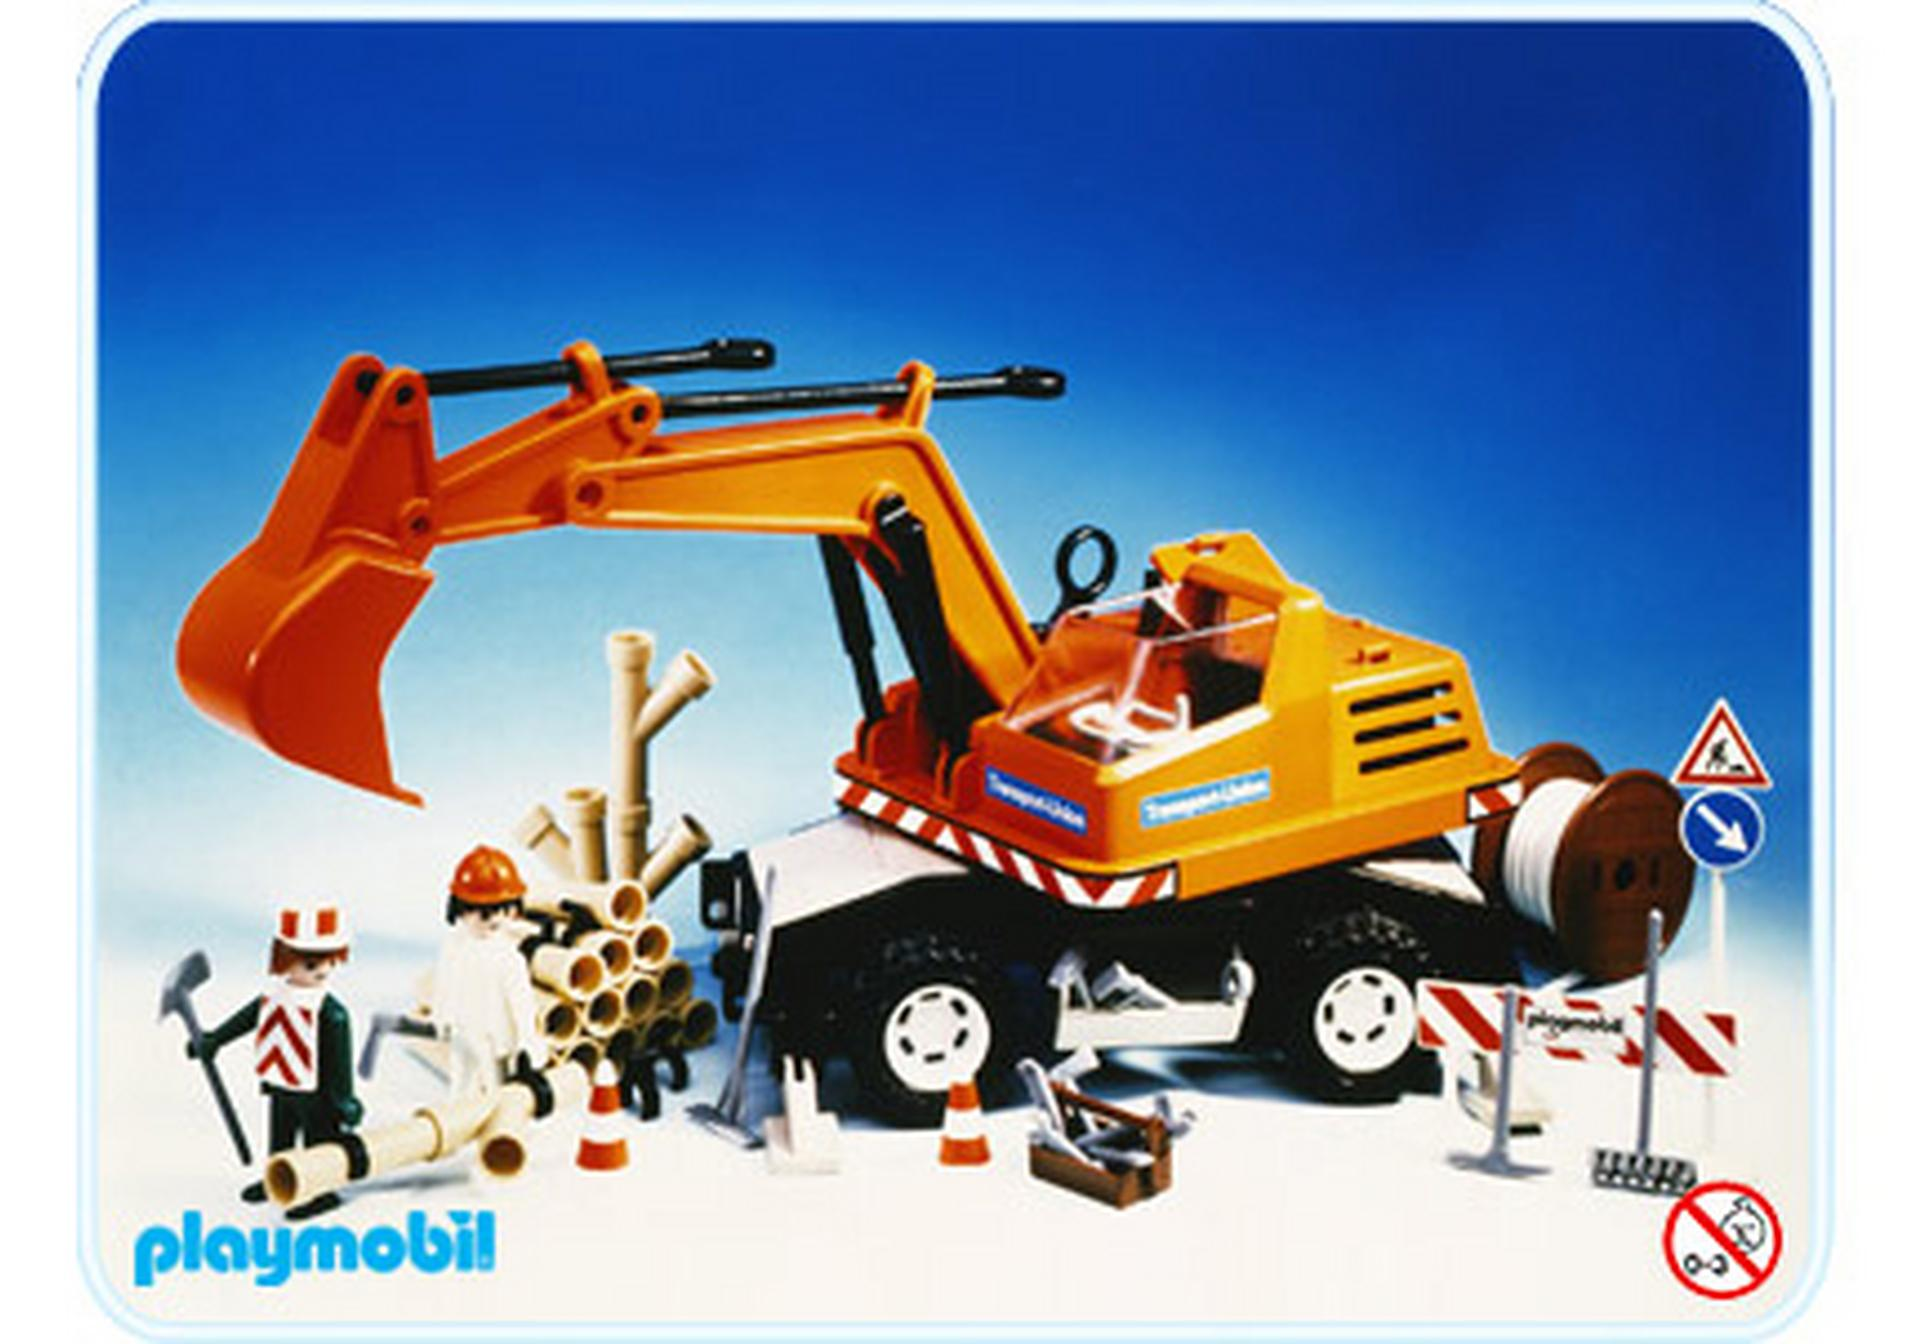 camion pelleteuse 3472 a playmobil france. Black Bedroom Furniture Sets. Home Design Ideas